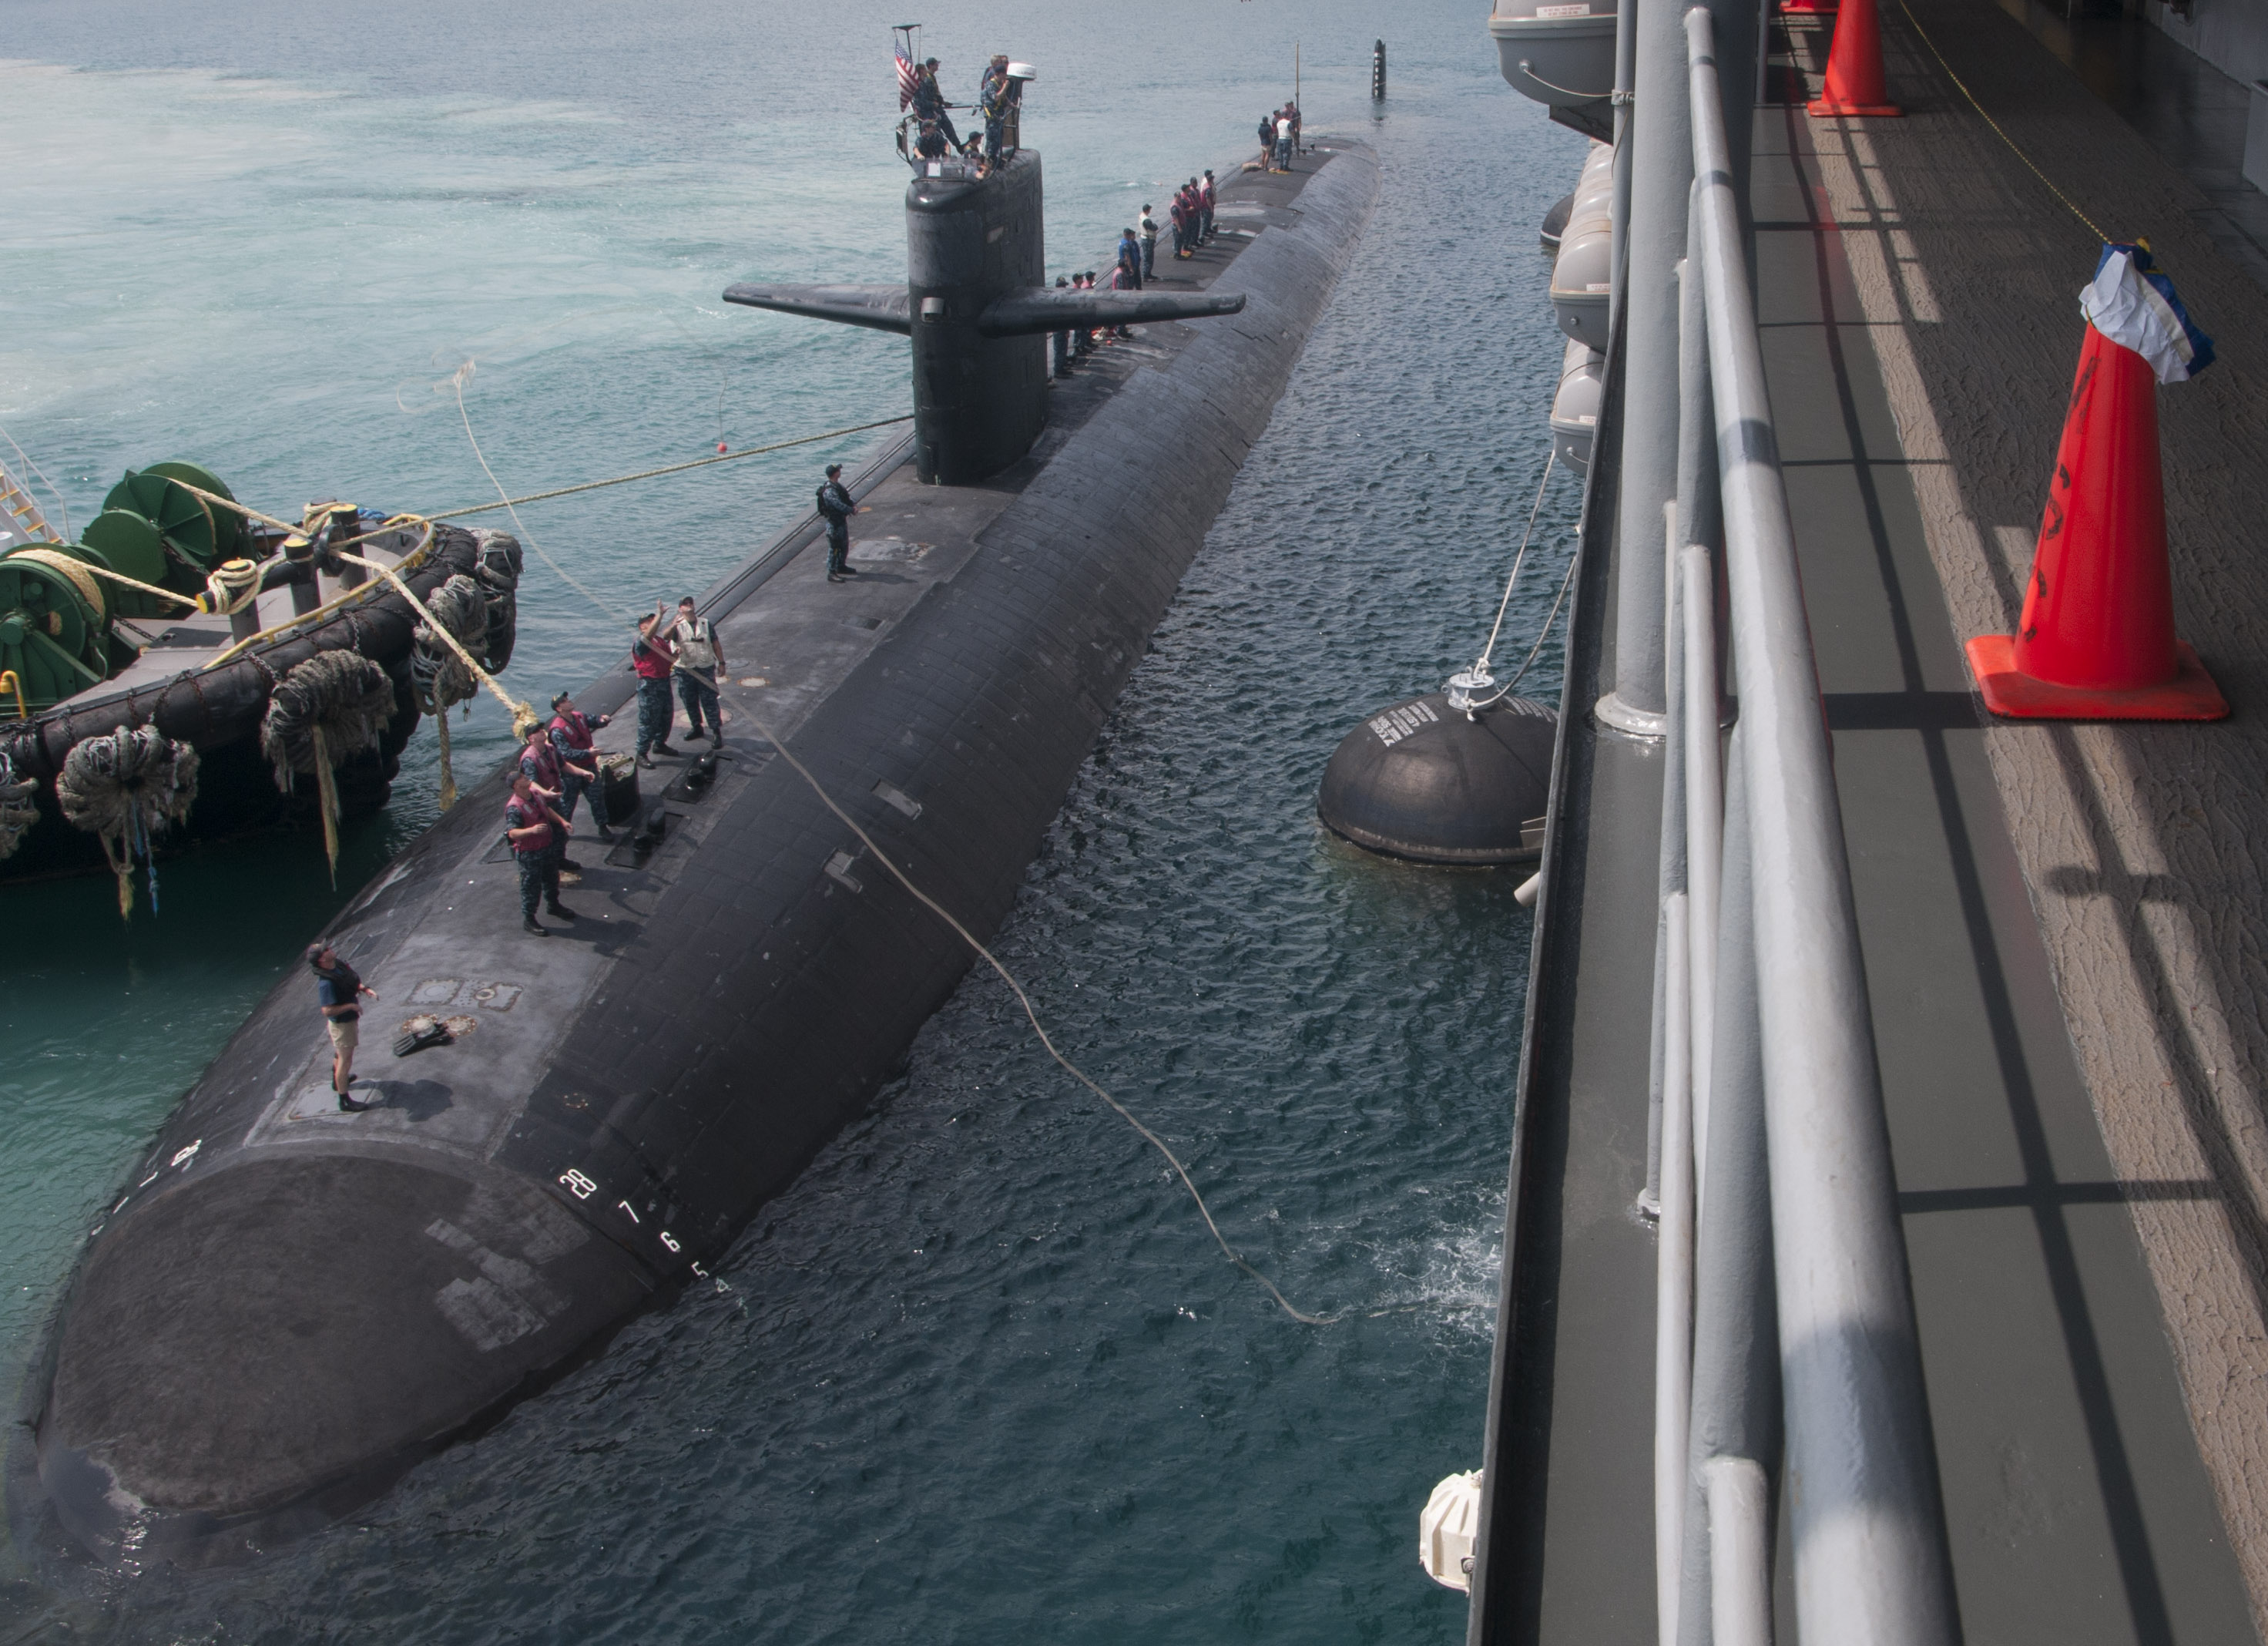 The Los Angeles-class attack submarine USS City of Corpus Christi (SSN 705) maneuvers into position to moor alongside the submarine tender USS Emory S. Land (AS 39) to complete repair maintenance actions in Guam in September 2015. US Navy photo.